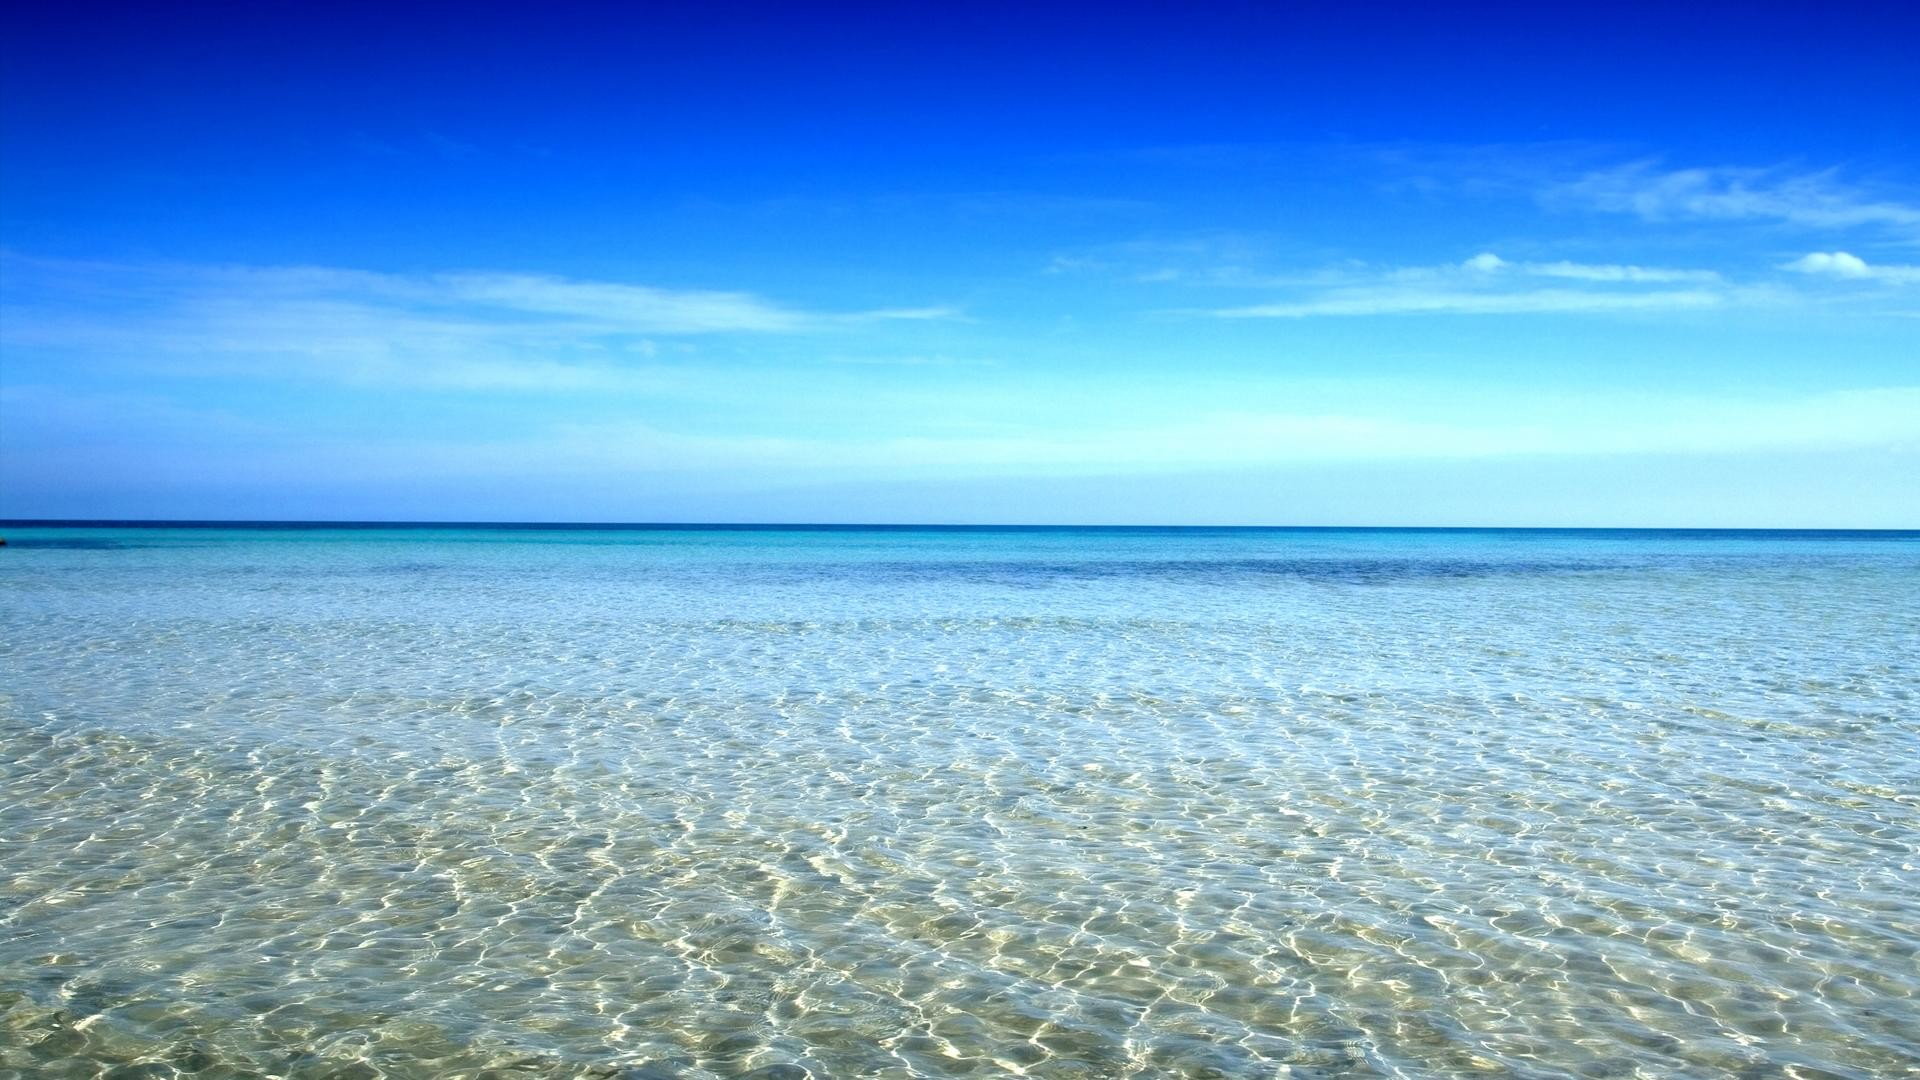 1920x1080 Ocean Water Background Image #186 Wallpaper Full HD 1,920×1,080 pixels